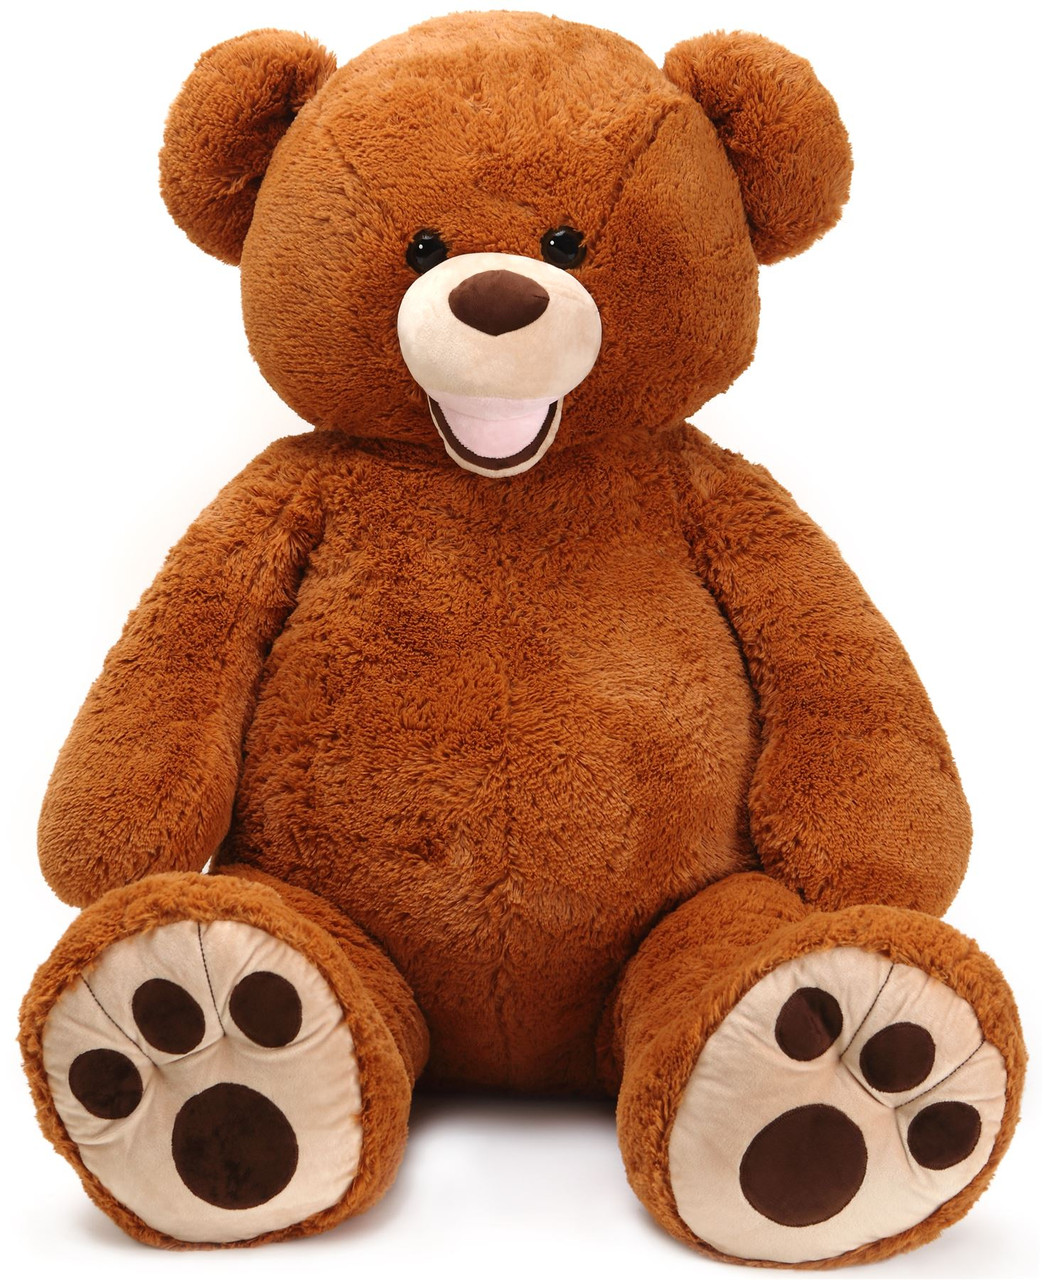 Moochie The Bear 5 Foot 60 Inch Stuffed Animal Jumbo Big